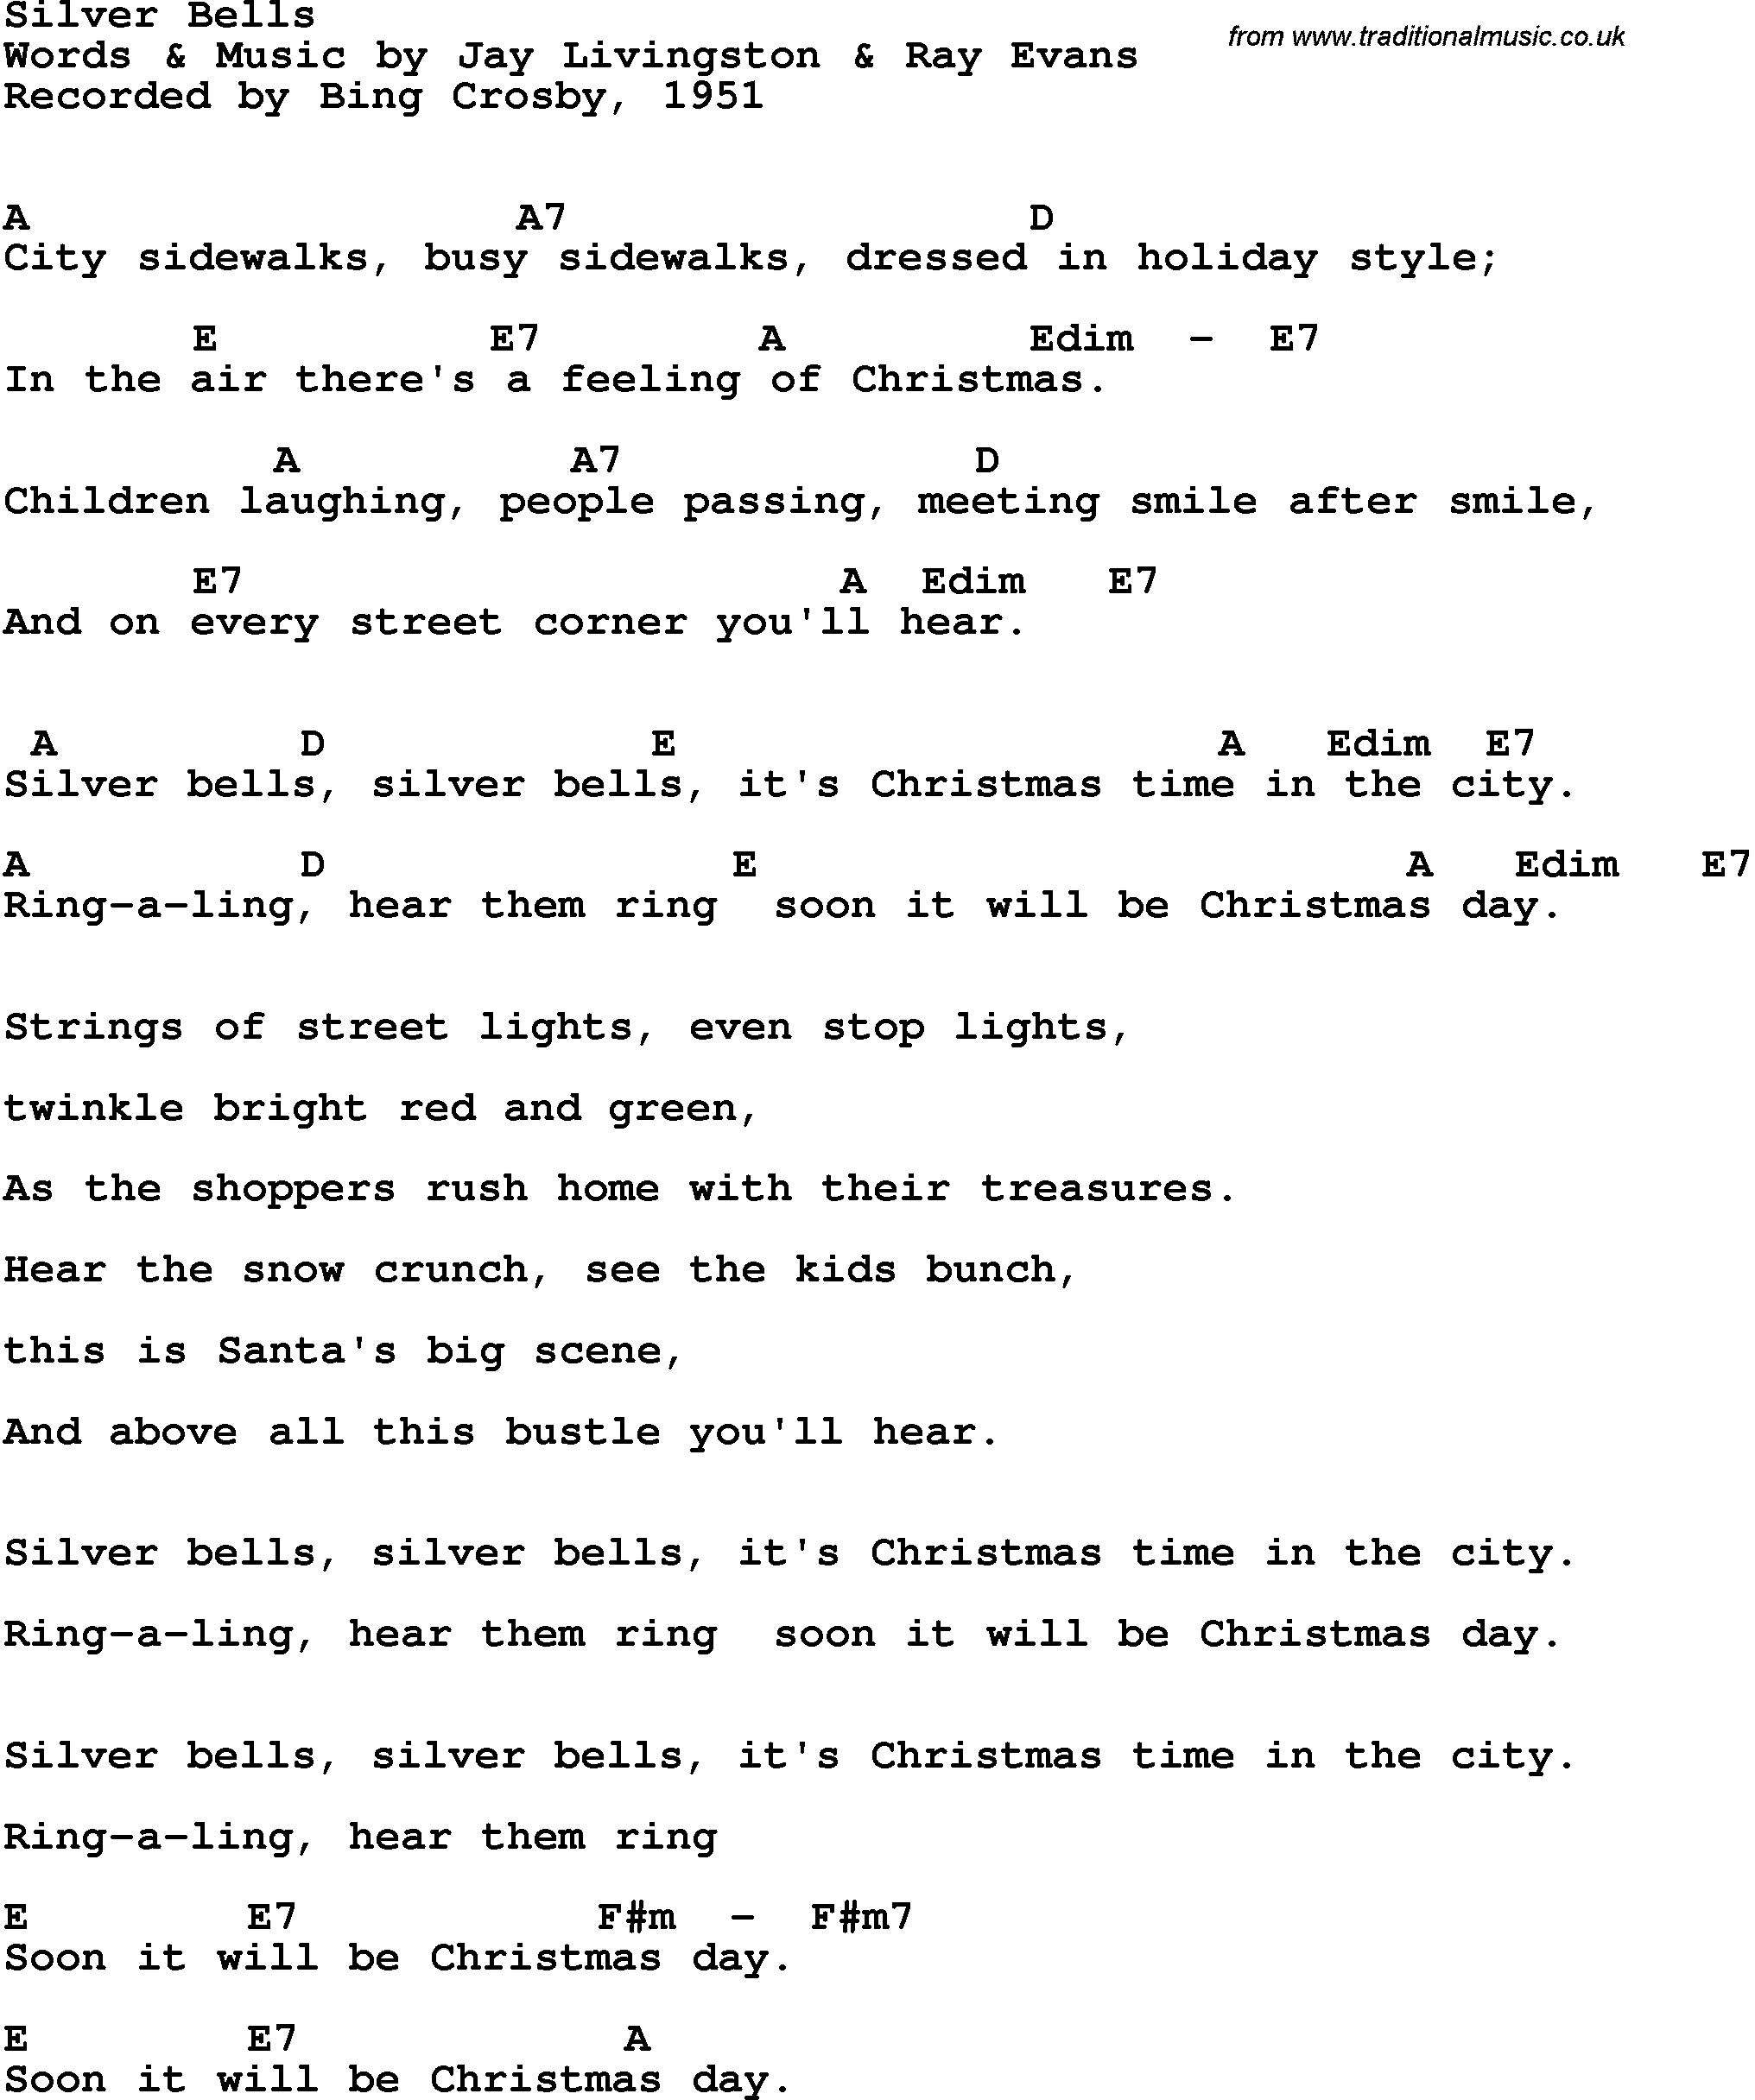 Song lyrics with guitar chords for Silver Bells - Bing Crosby, 1951